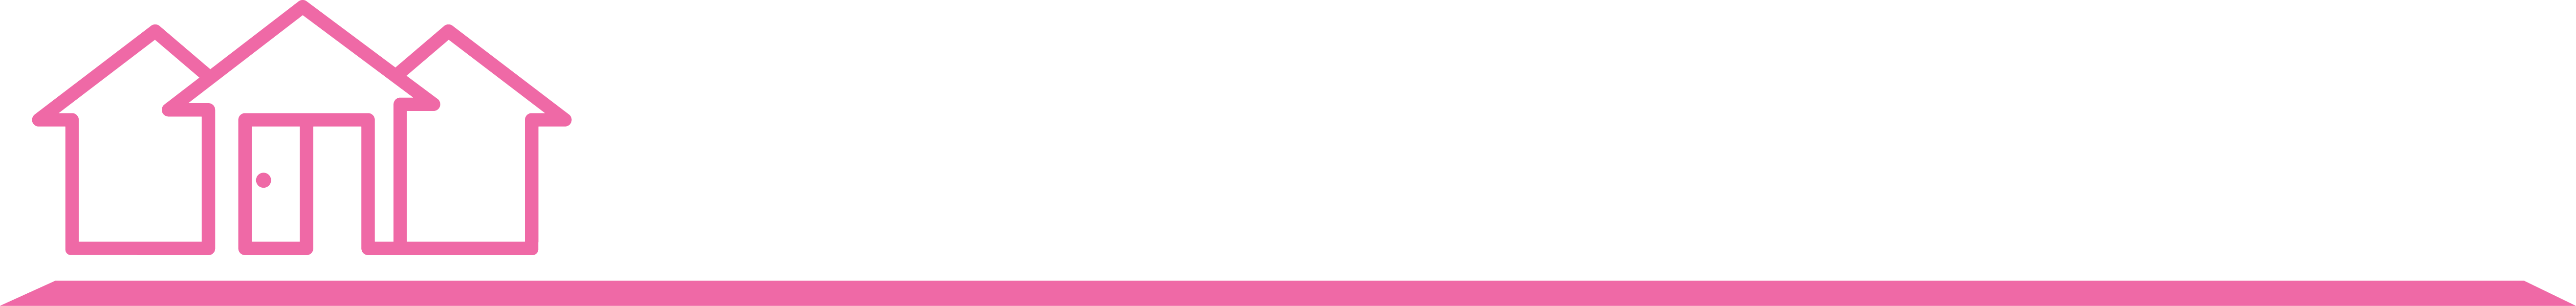 Pink Home Solutions